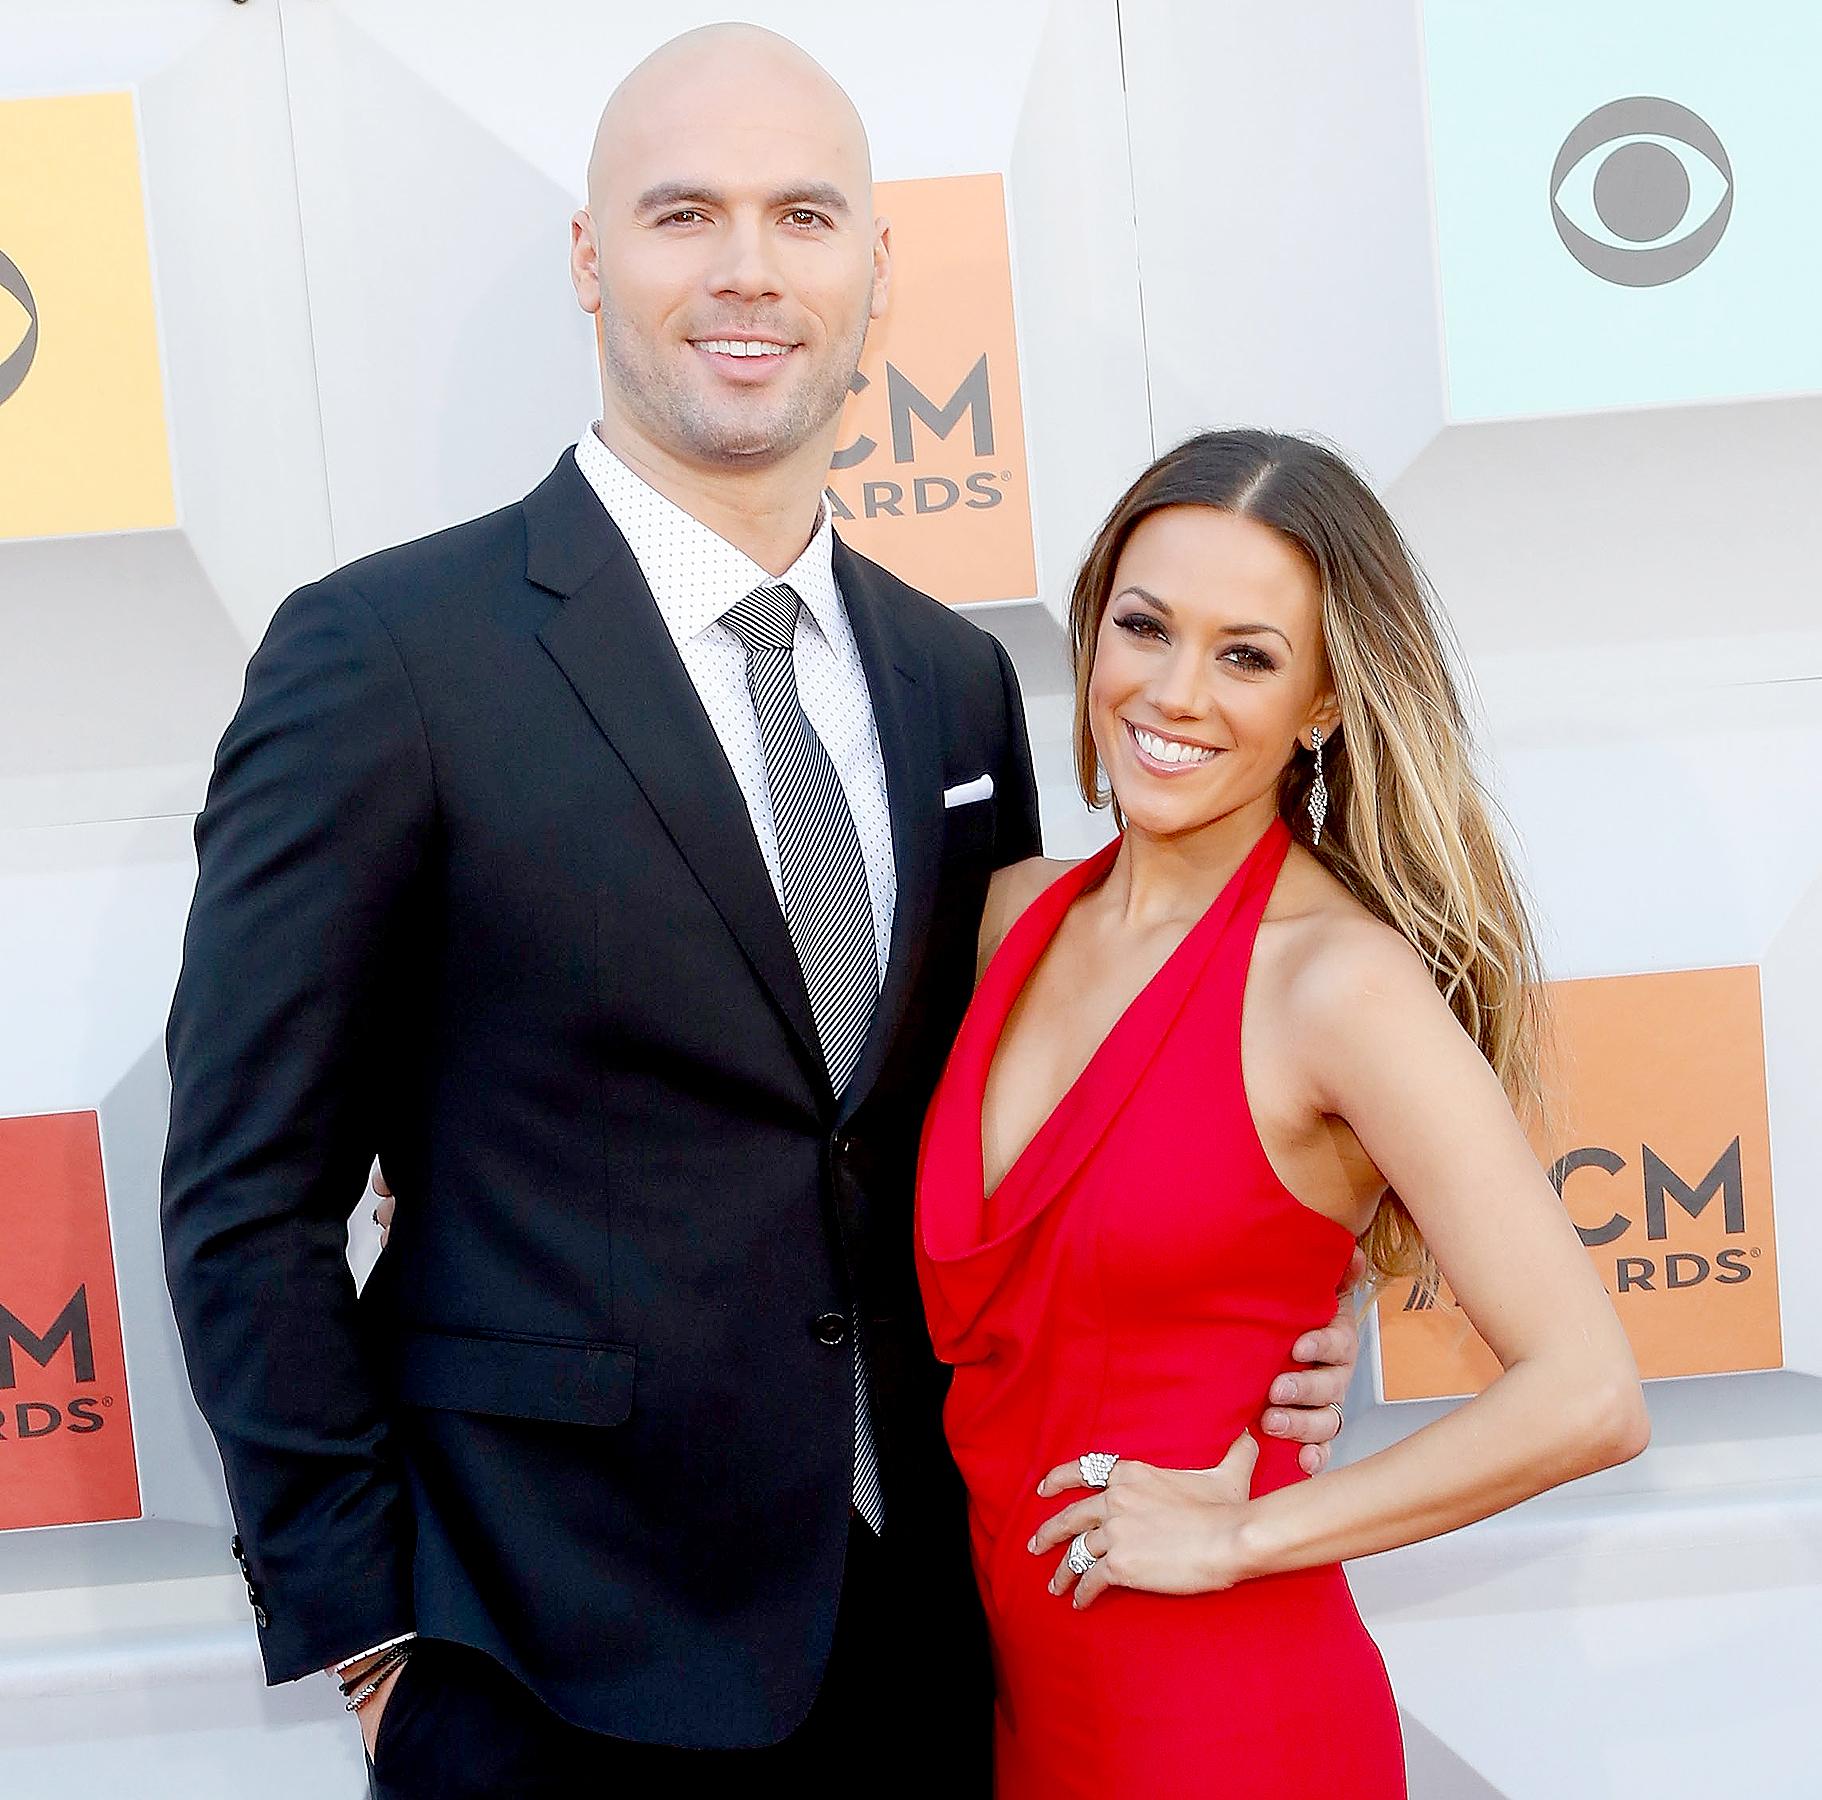 Mike Caussin and Jana Kramer attend the 51st Academy of Country Music Awards at MGM Grand Garden Arena on April 3, 2016 in Las Vegas, Nevada.